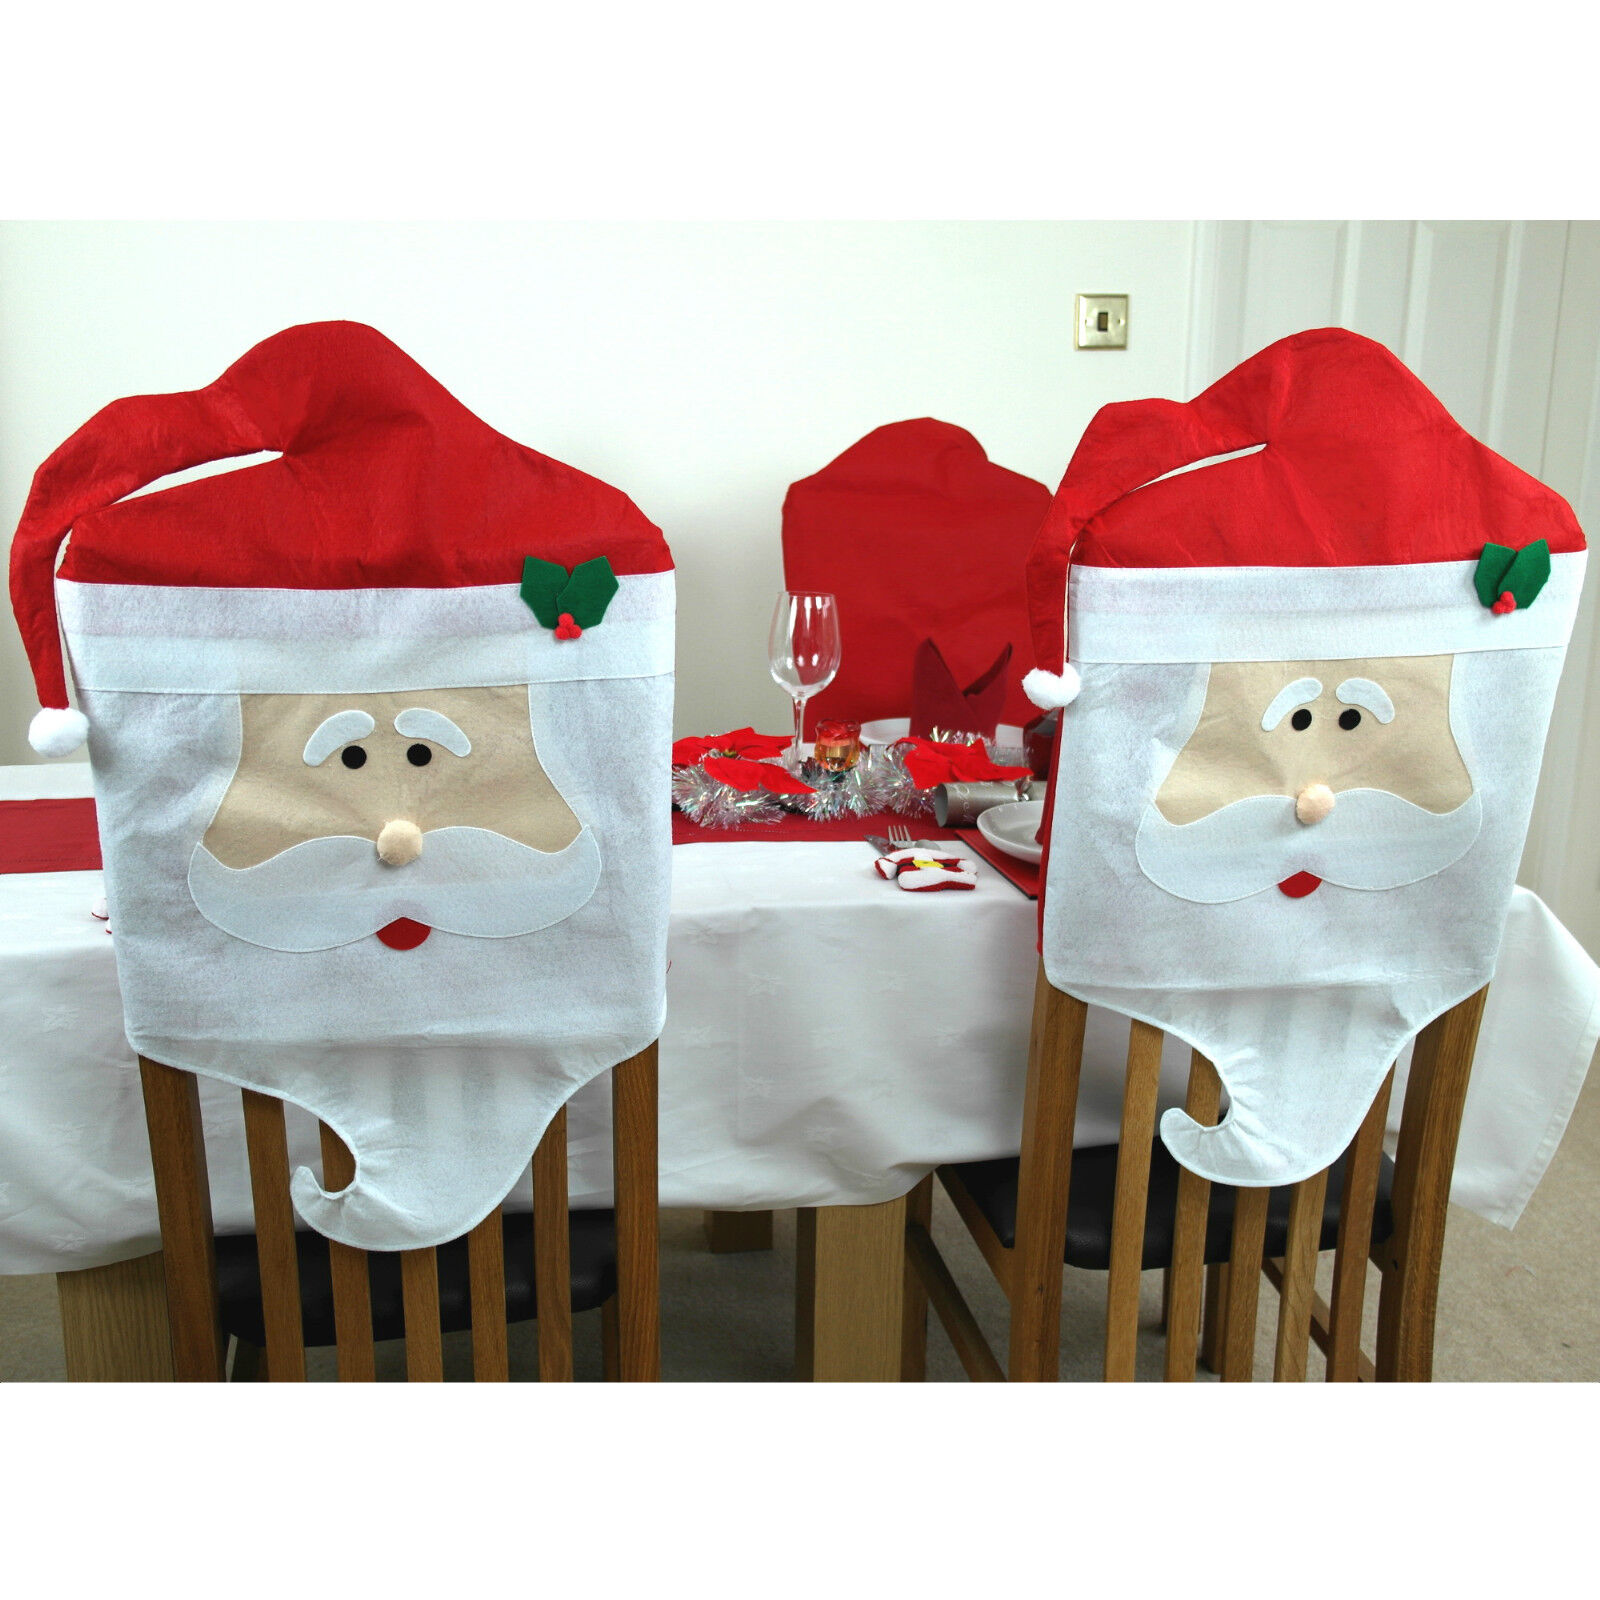 Miraculous Details About 2 X Santa Dining Chair Covers Father Christmas Decorations Xmas Festive Party Squirreltailoven Fun Painted Chair Ideas Images Squirreltailovenorg